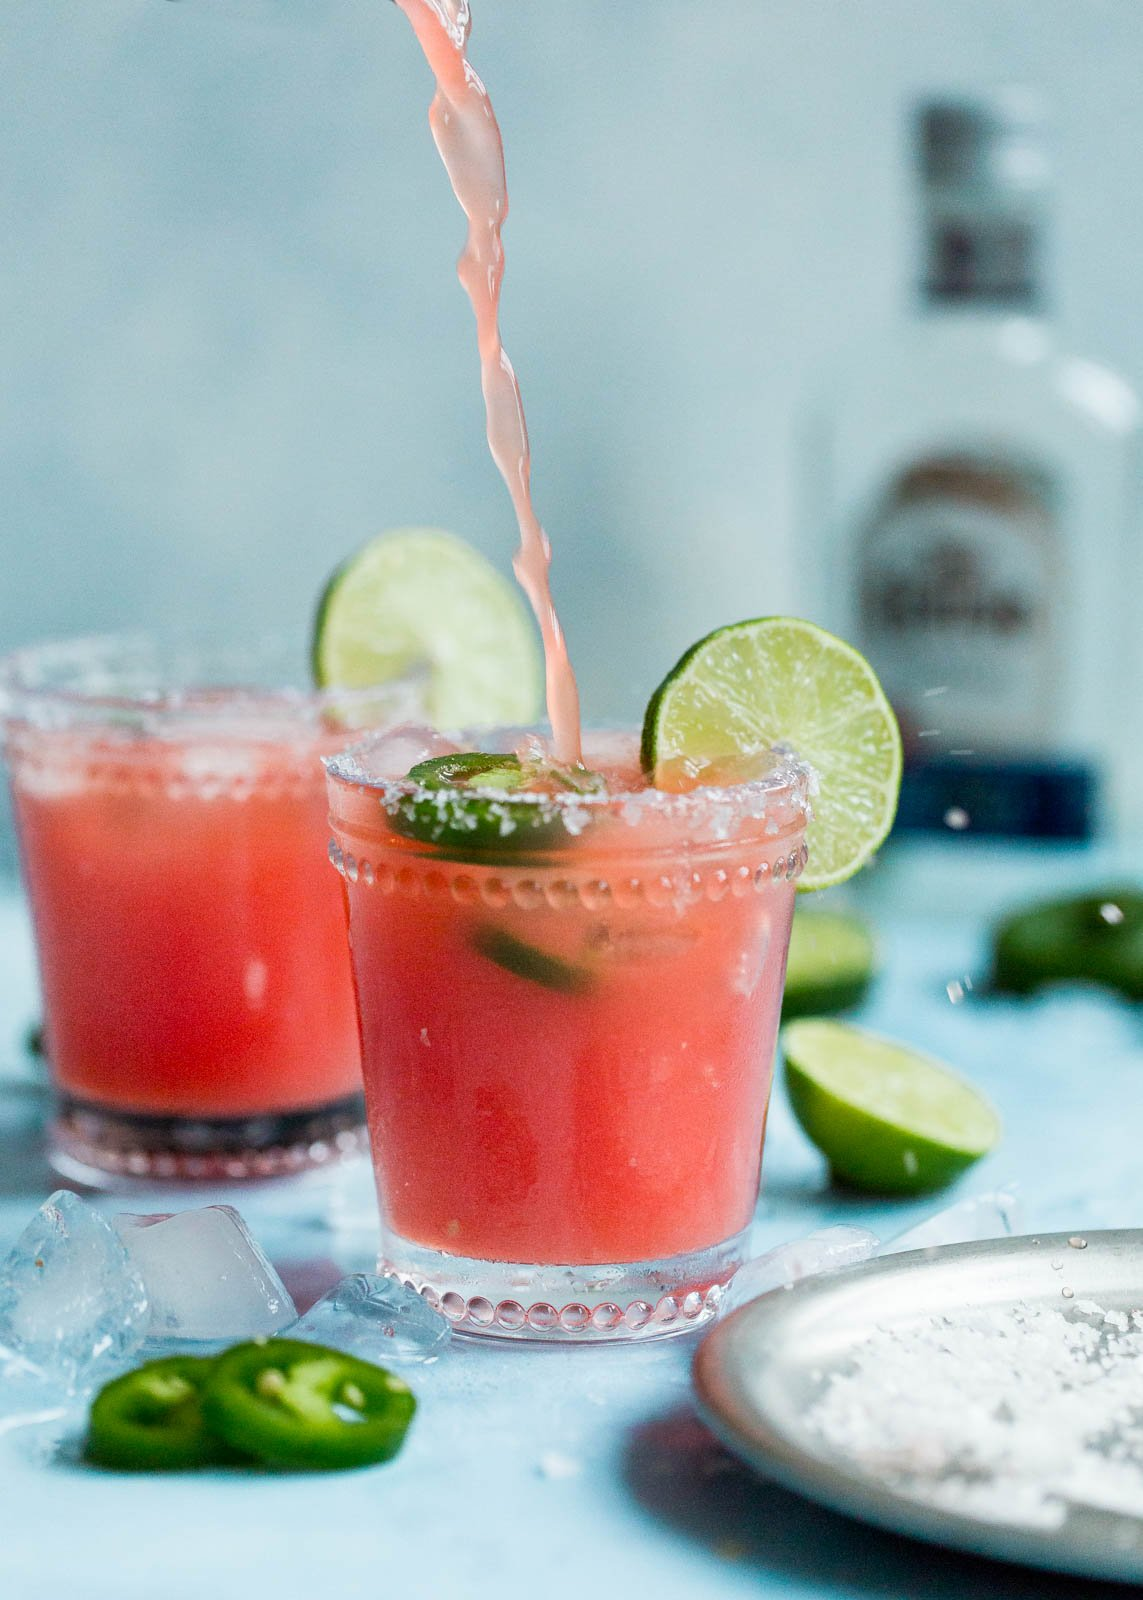 spicy watermelon margarita being poured into a glass